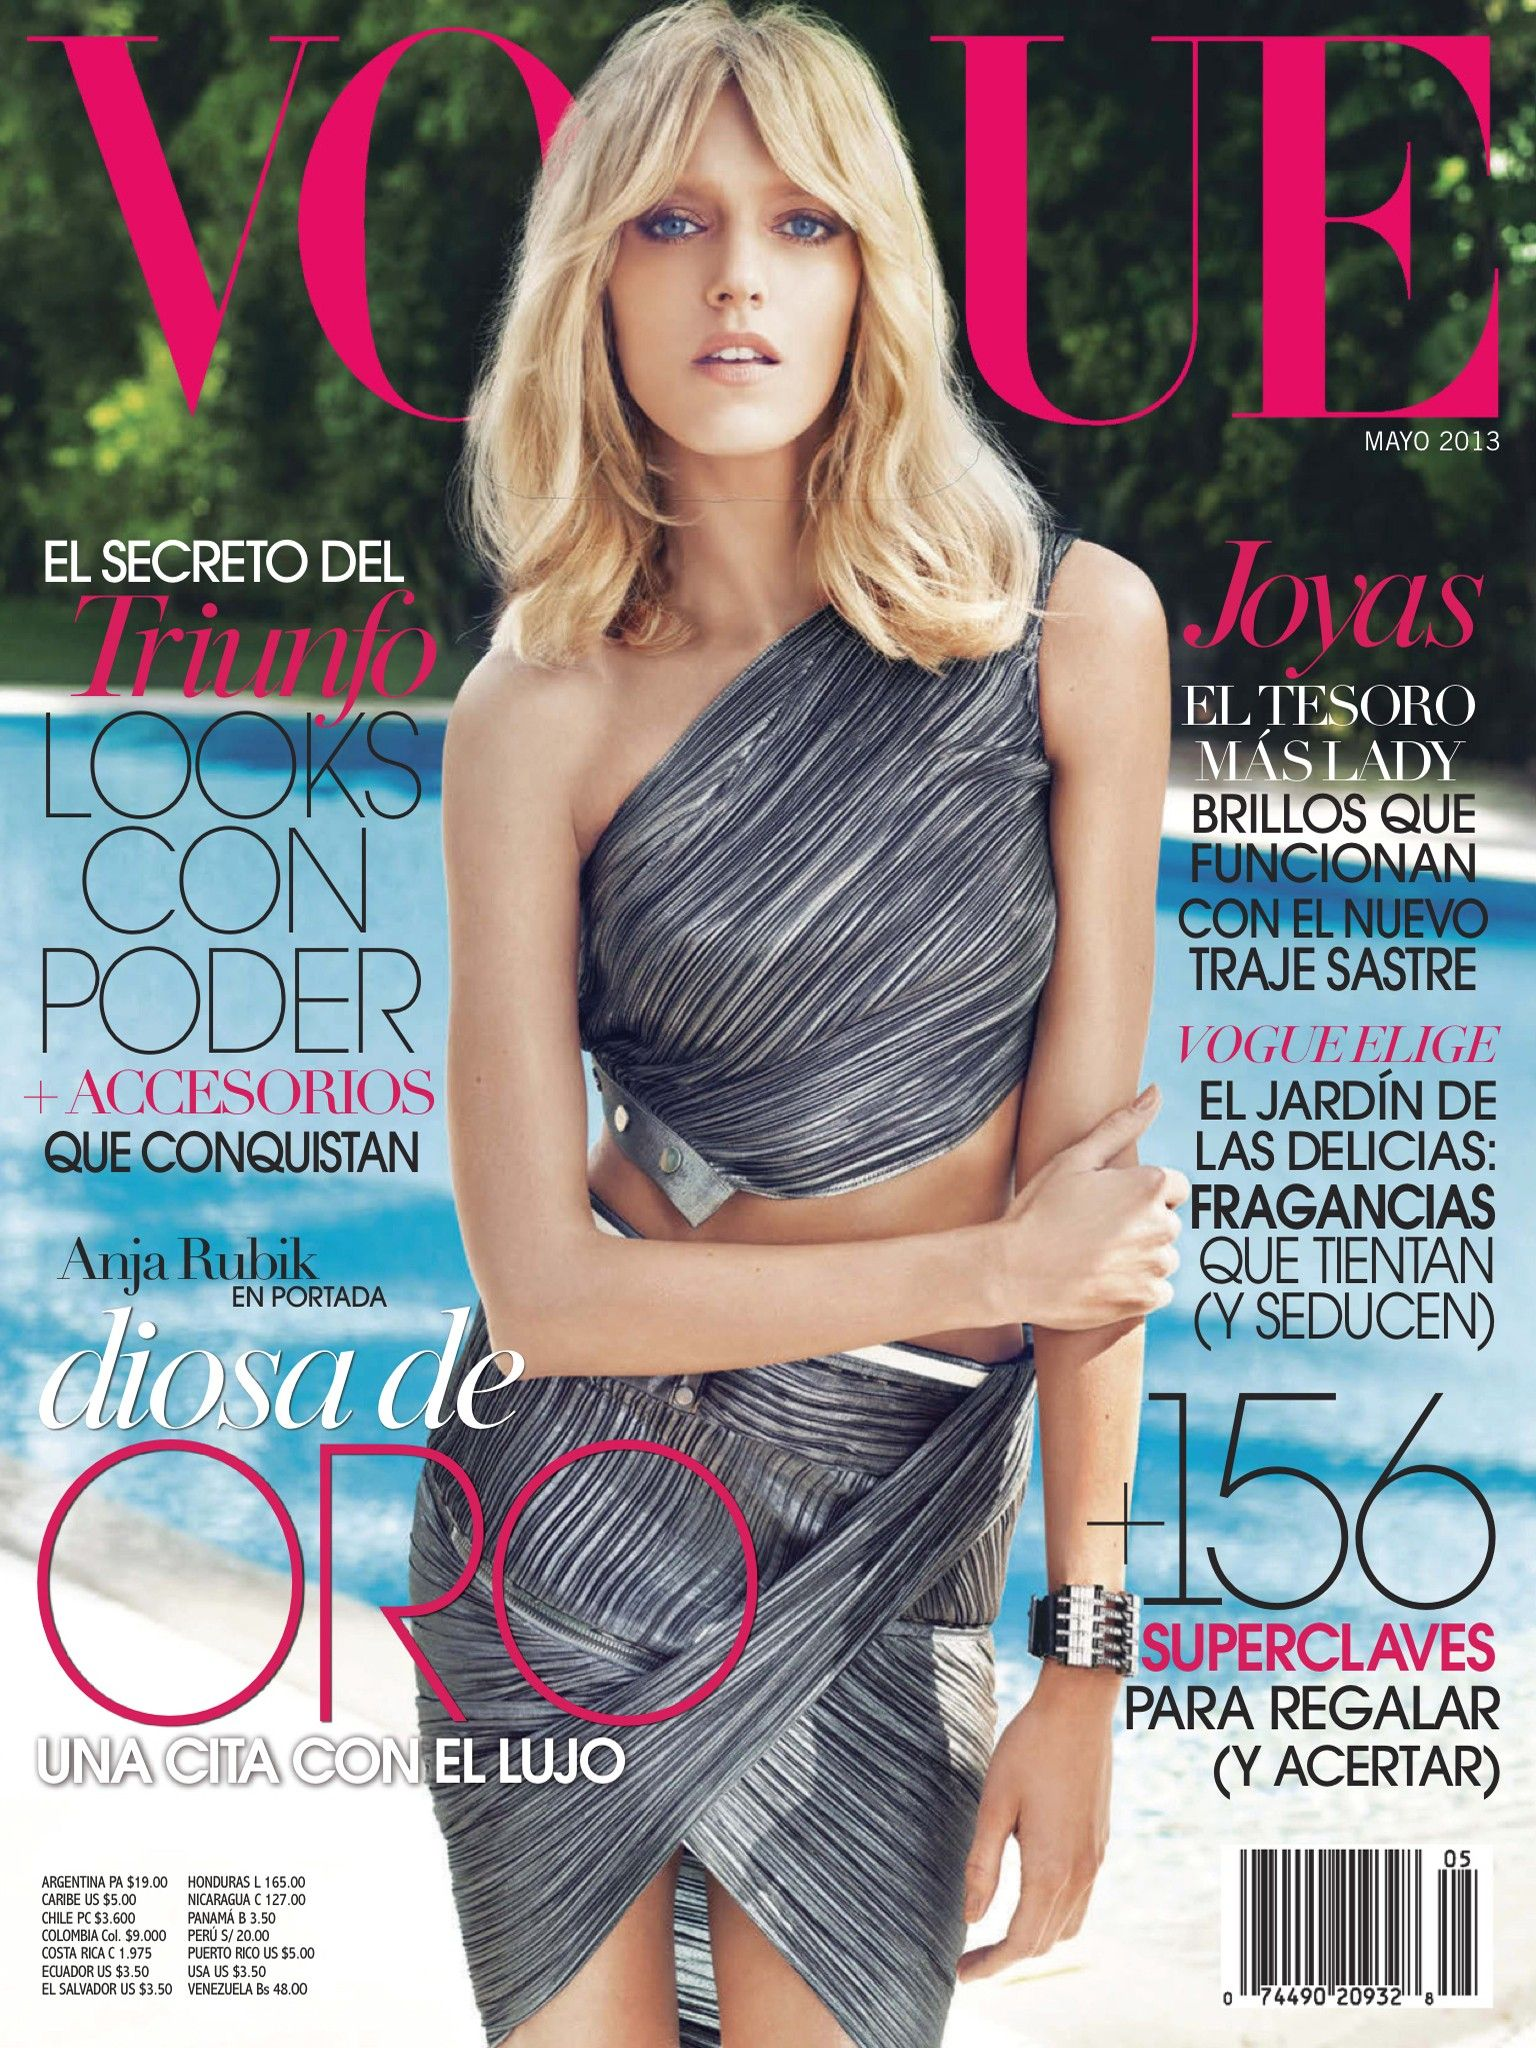 Fashion_Scans_Remastered.Anja_Rubik.VOGUE_MEXICO.May_2013.Scanned_by_VampireHorde.HQ.1